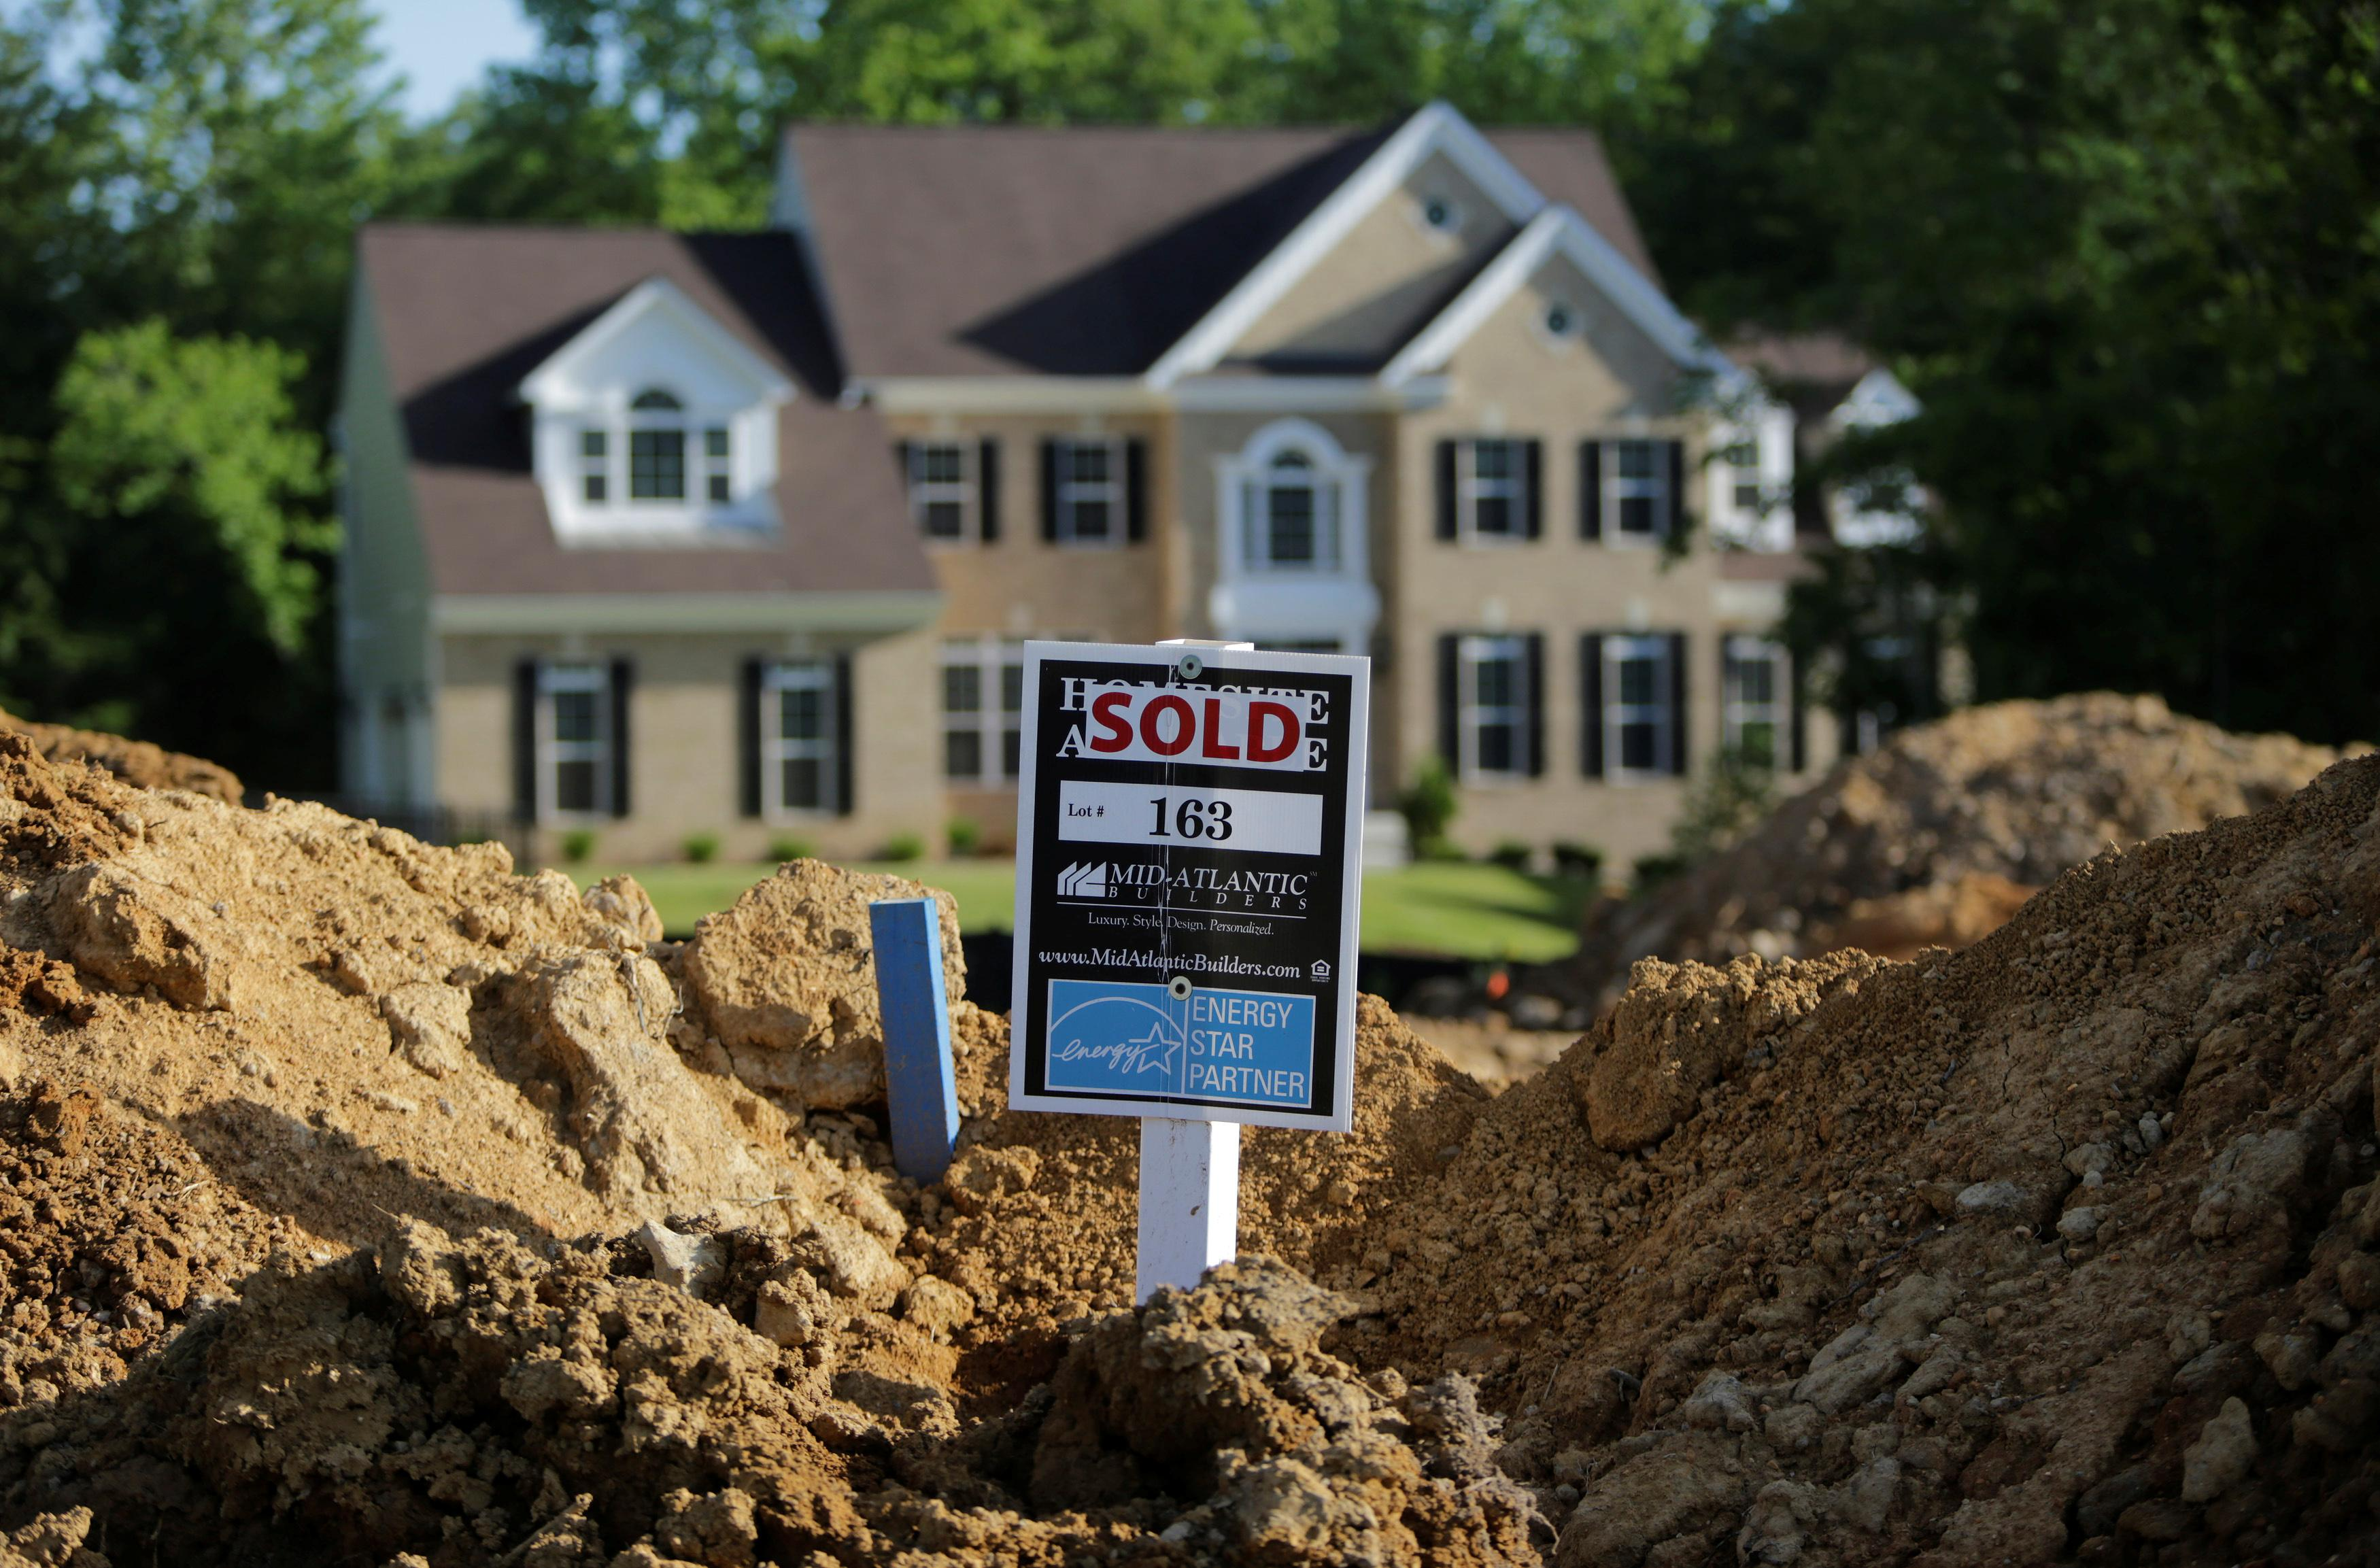 U.S. pending home sales rise more than expected in August